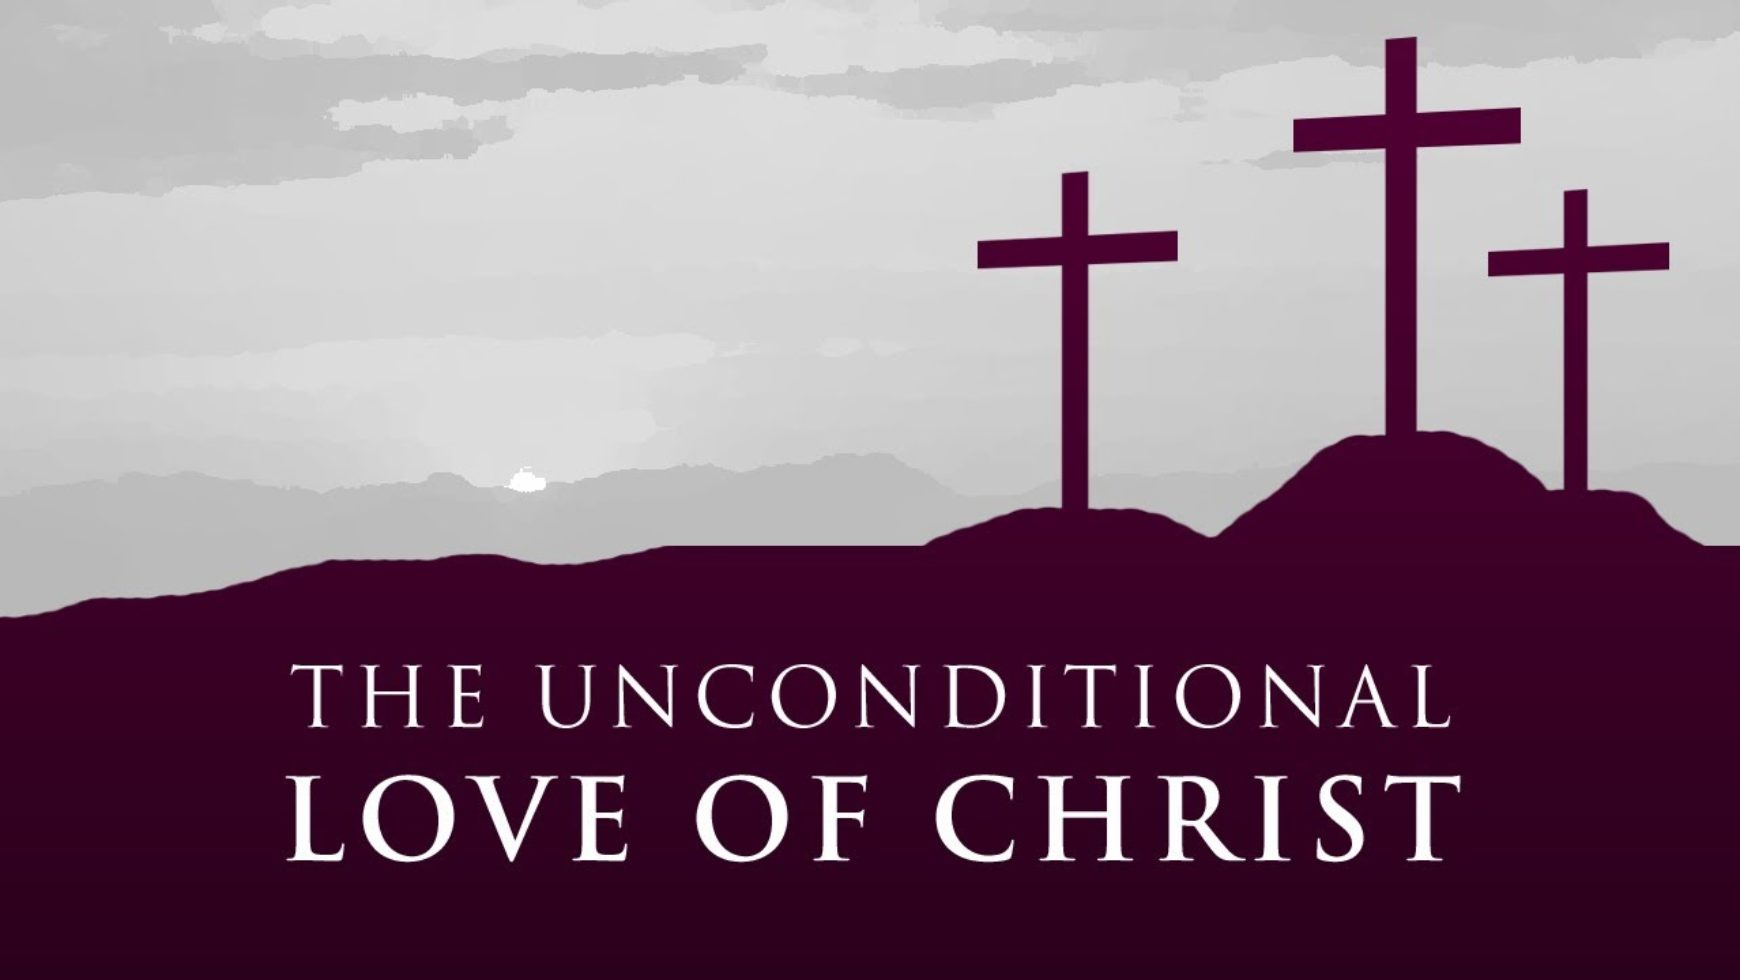 The unconditional love of Christ